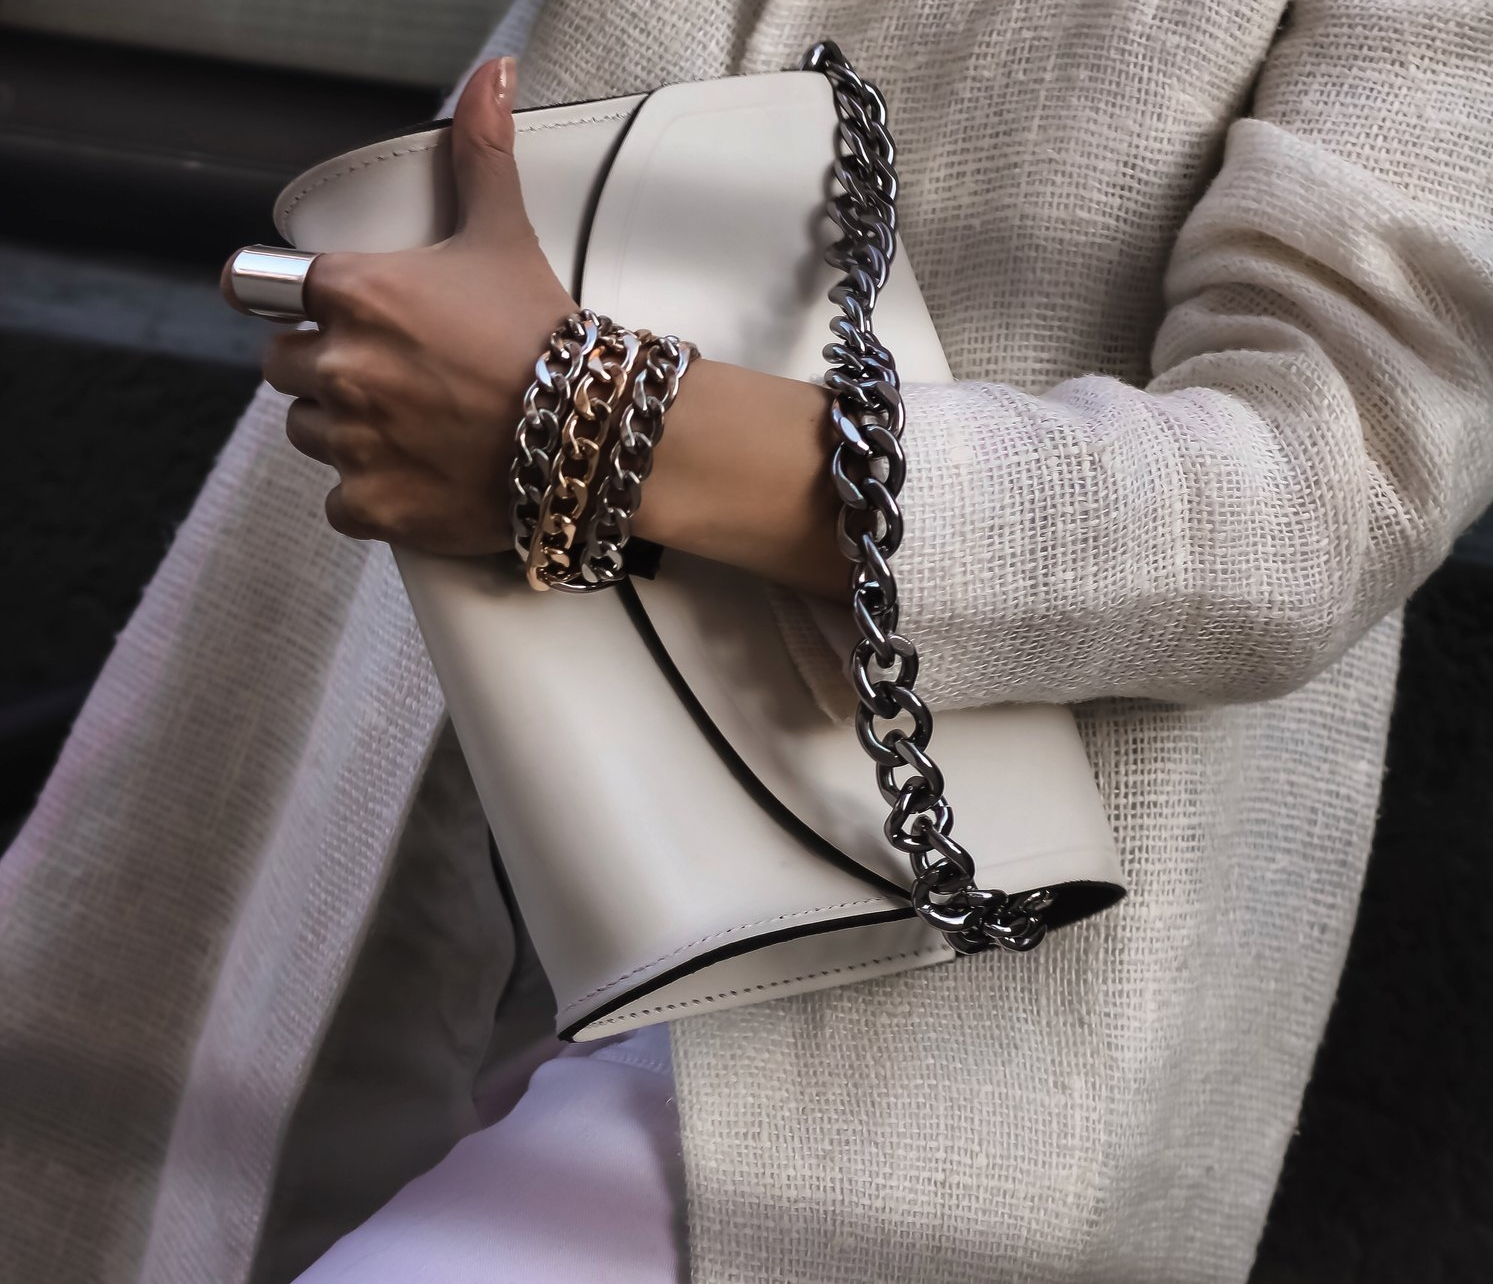 Isabel-Alexander-closeup-details-oversized-chain-bag-bracelet